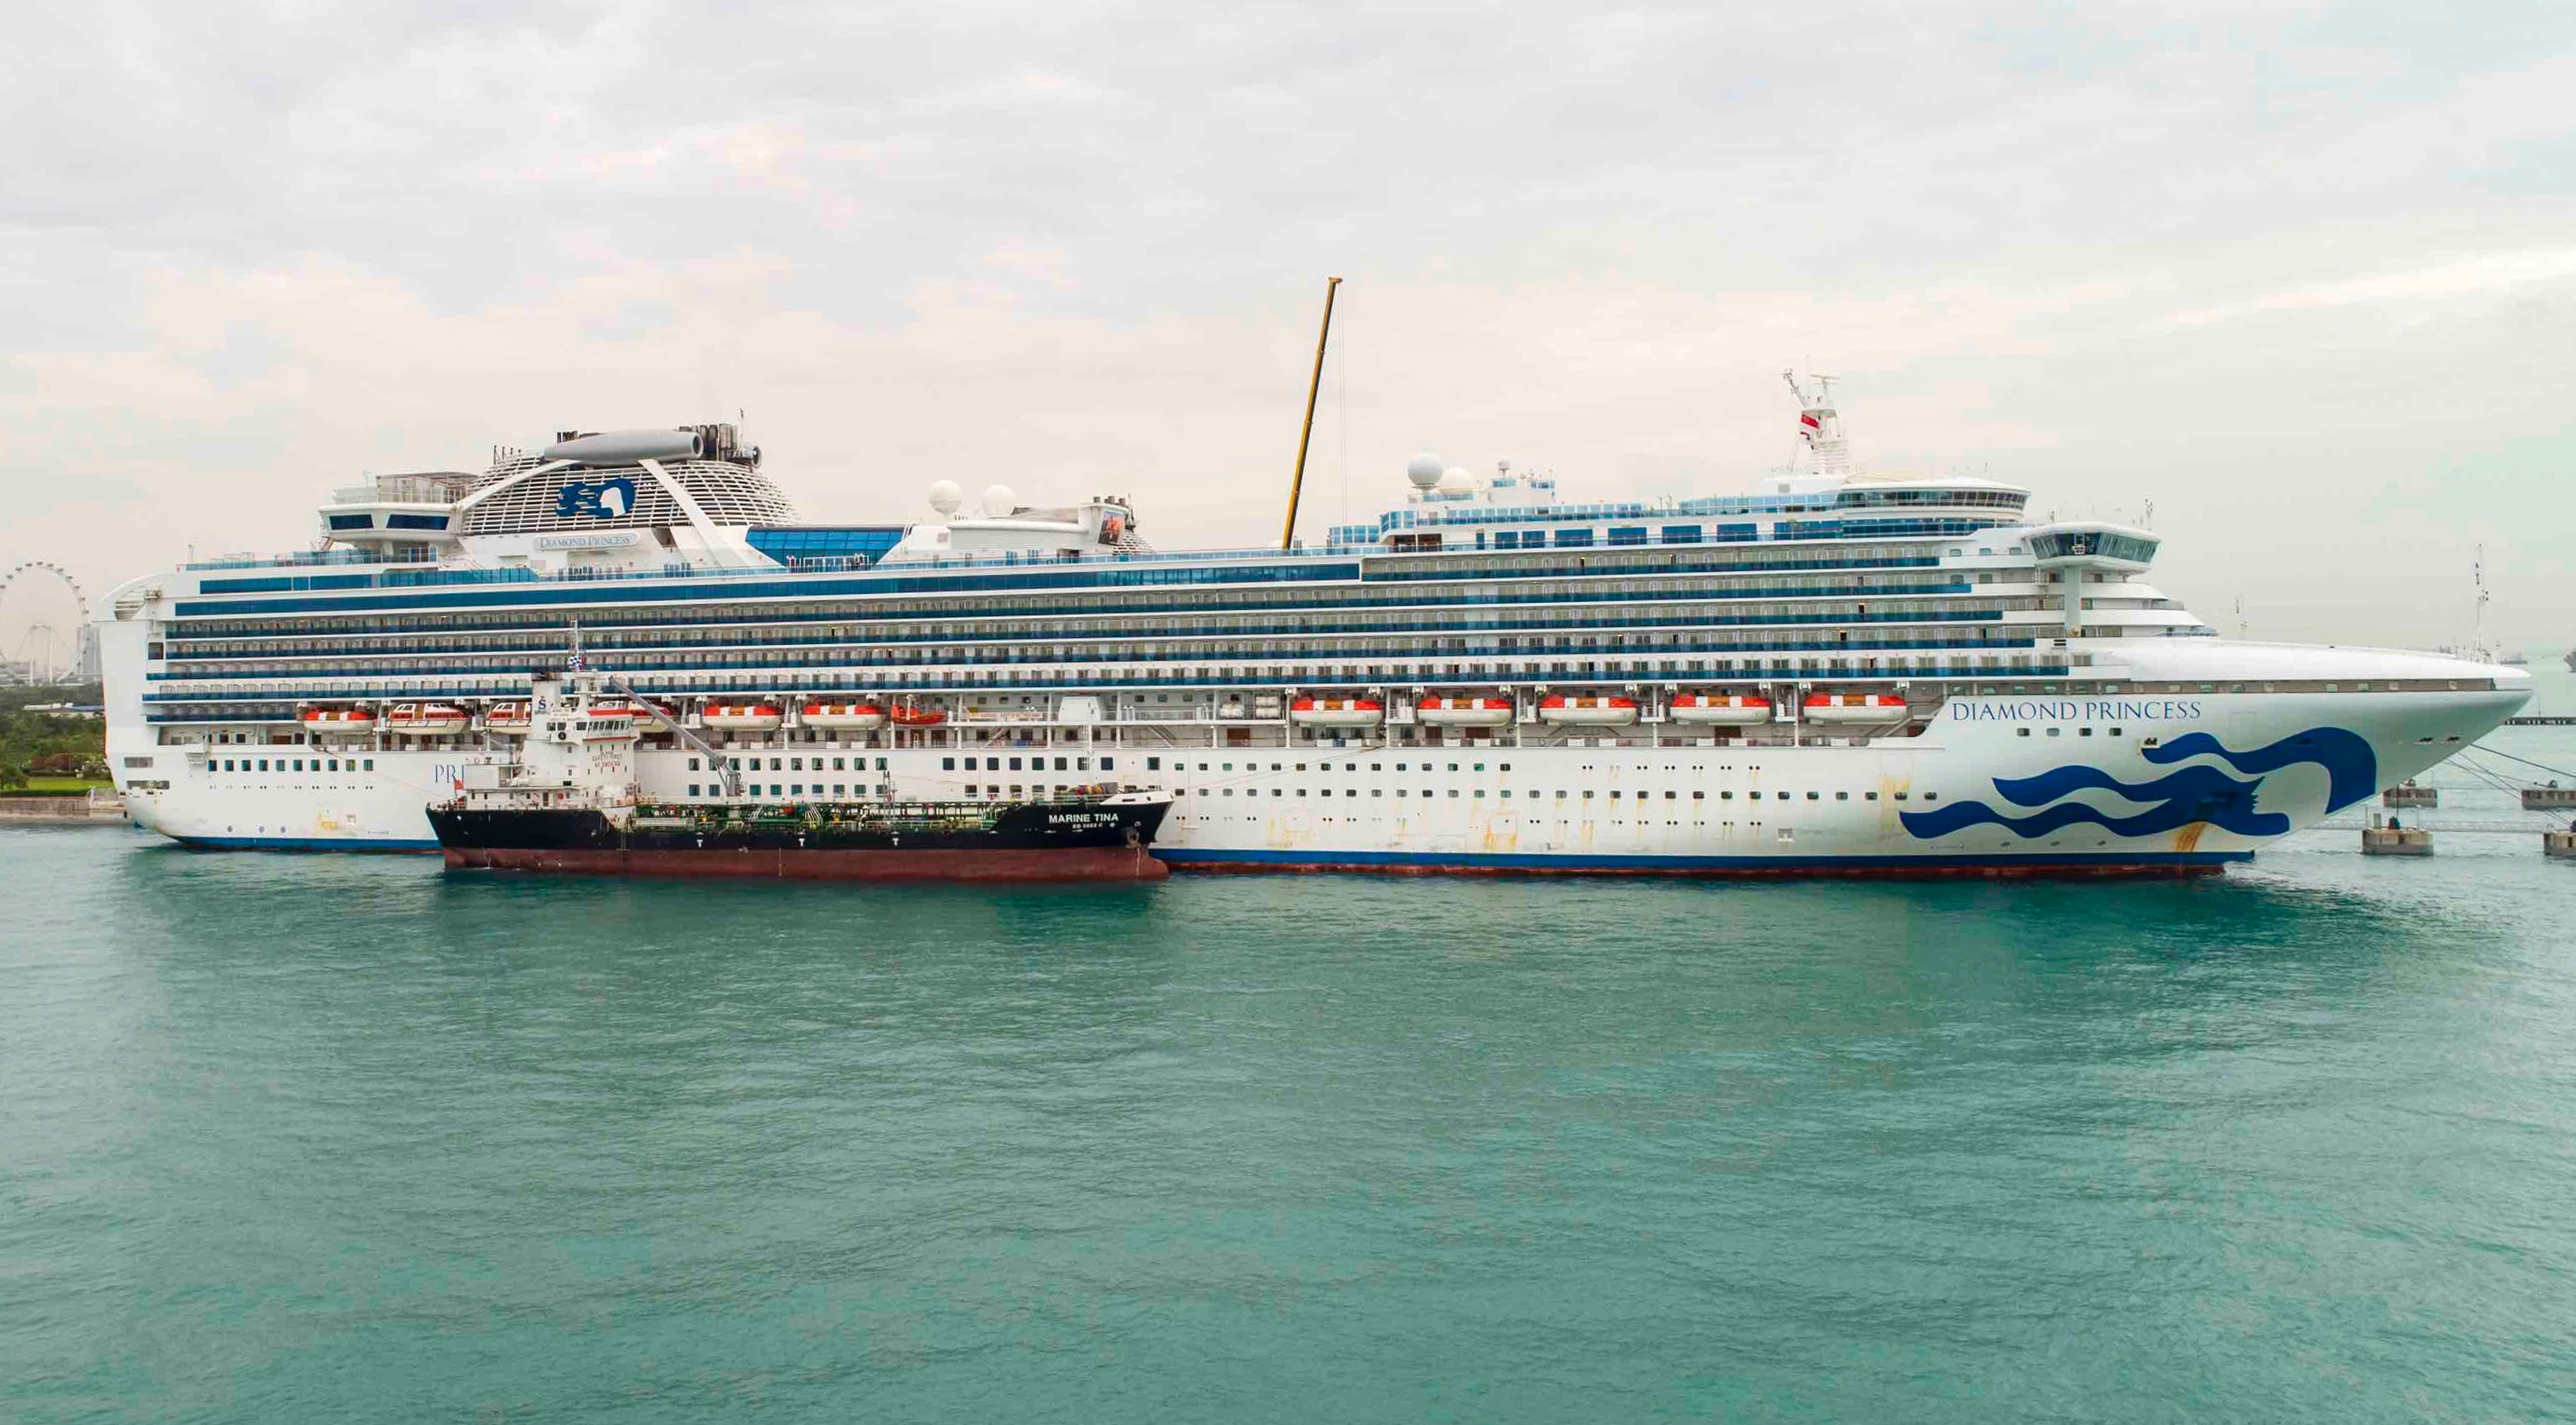 Search for best-in-class provider to disinfect Diamond Princess